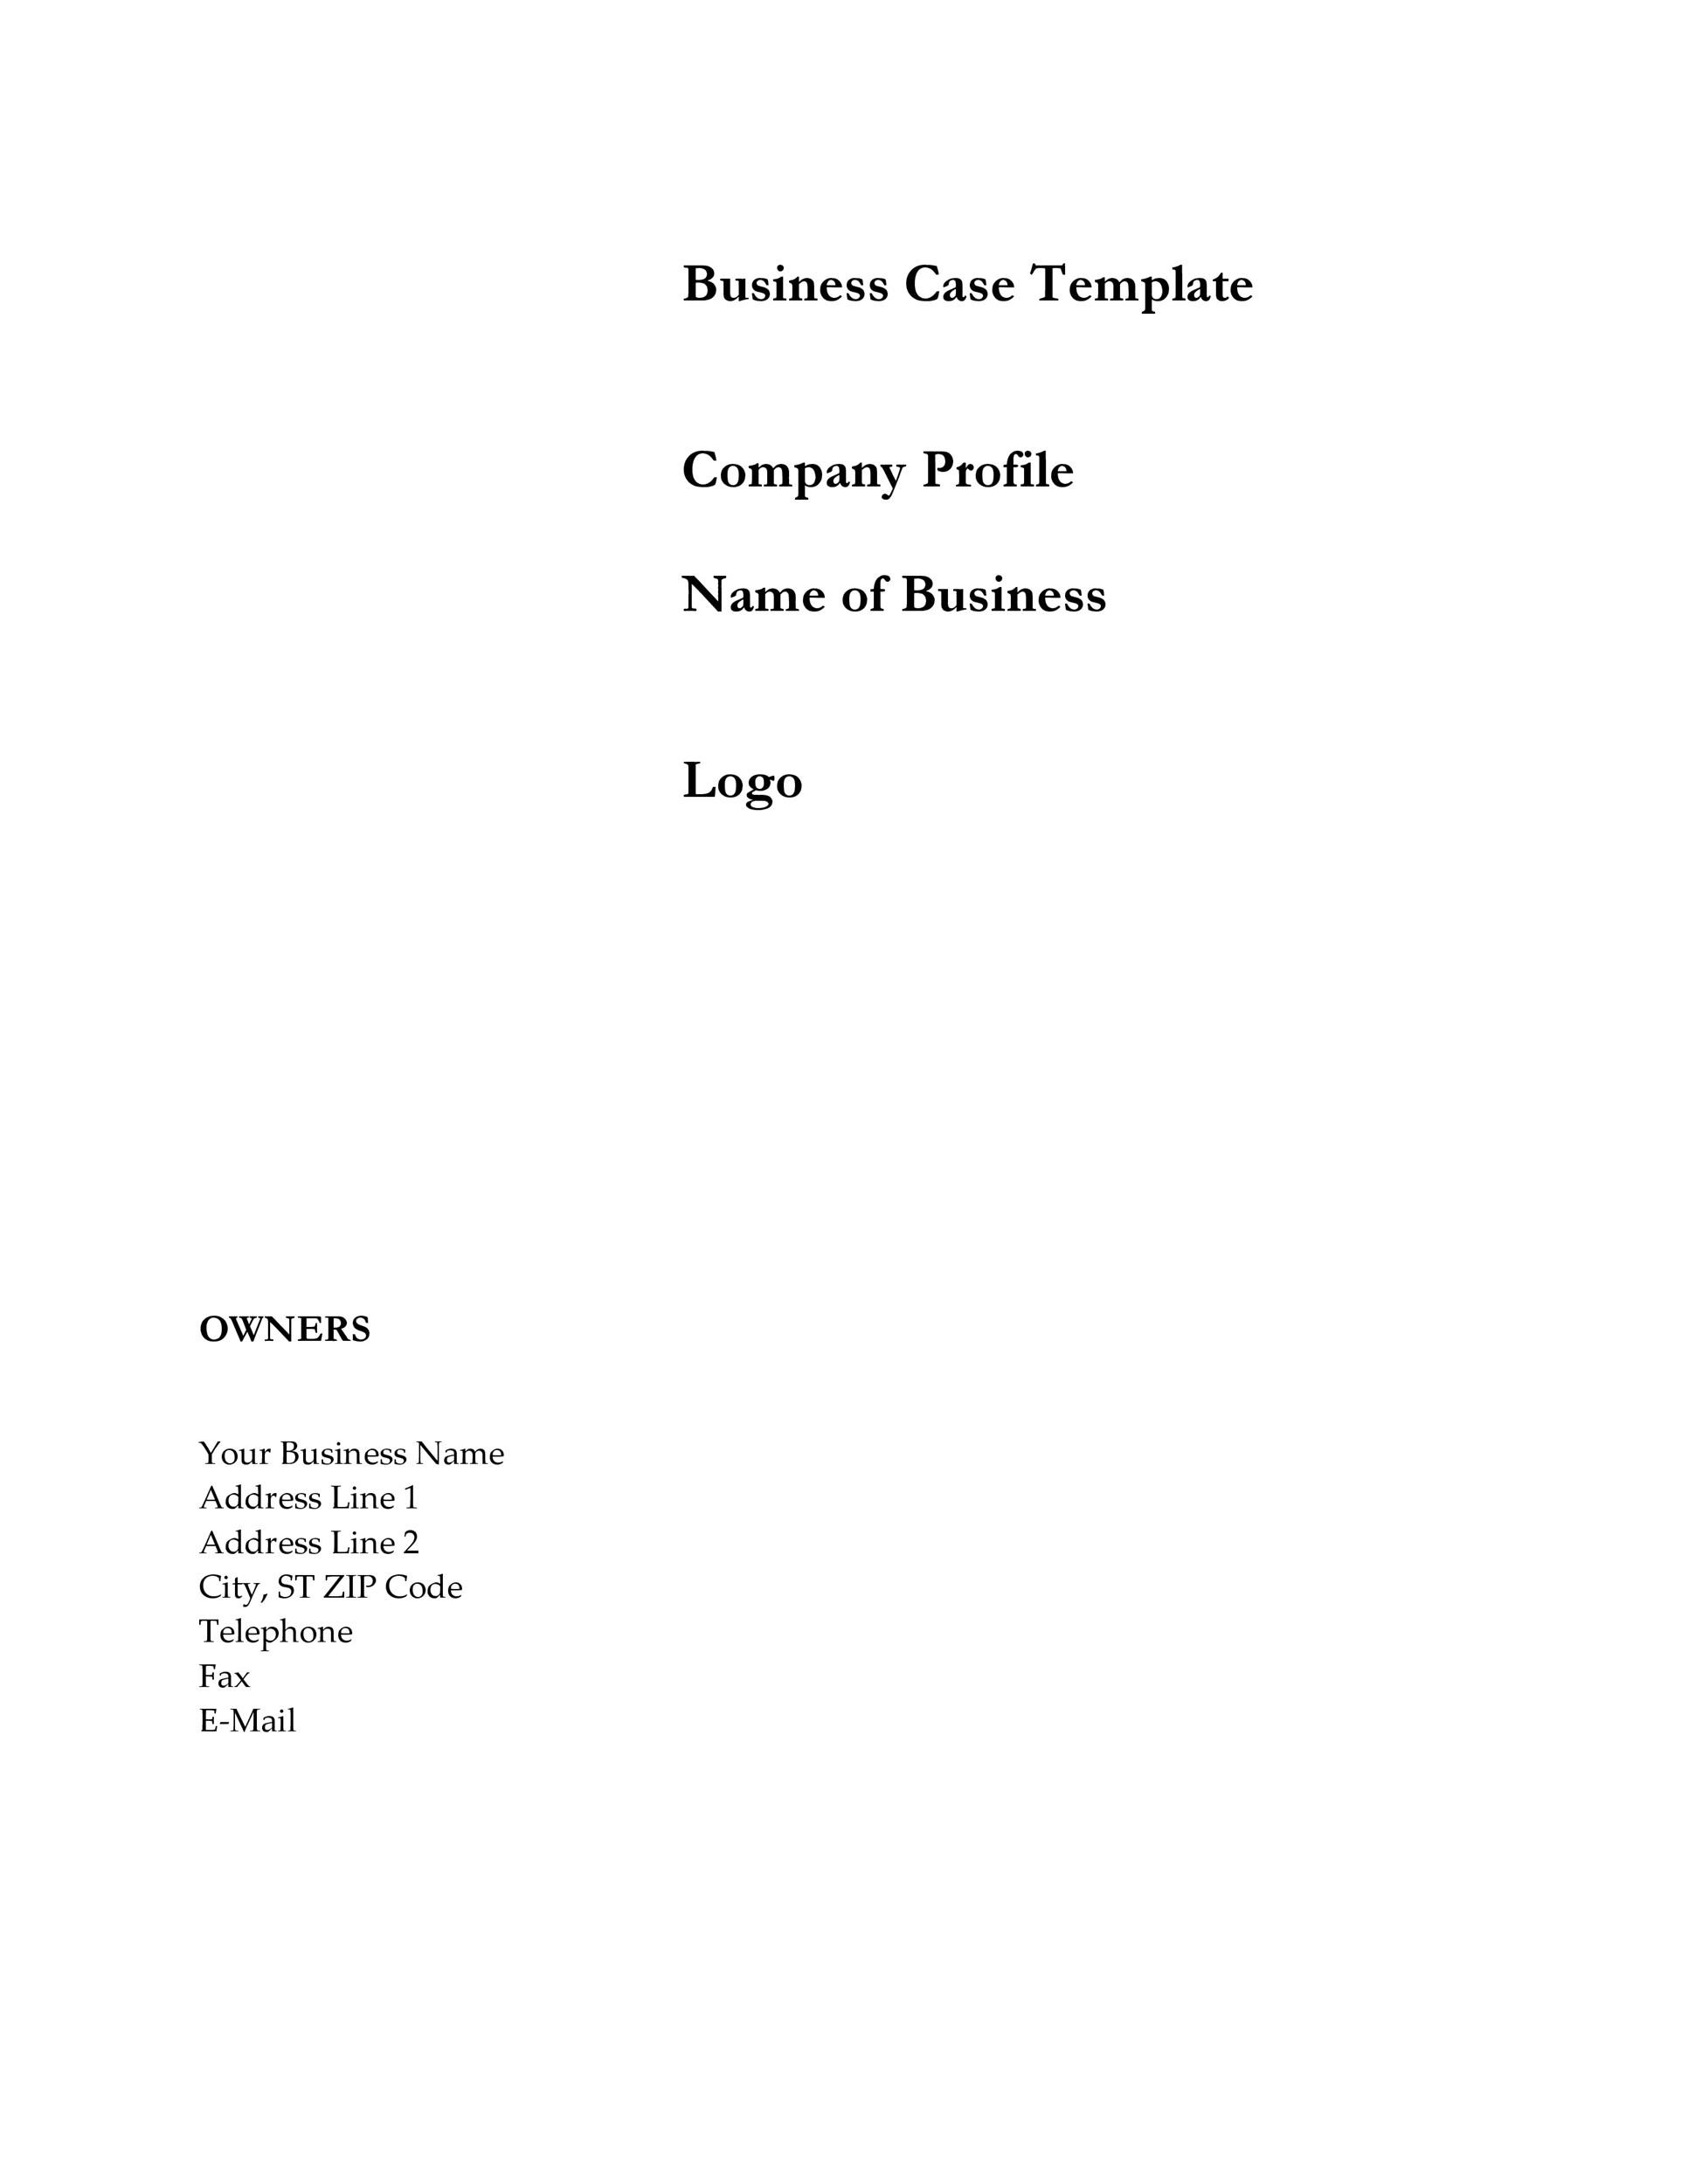 Free Business Case Template 14